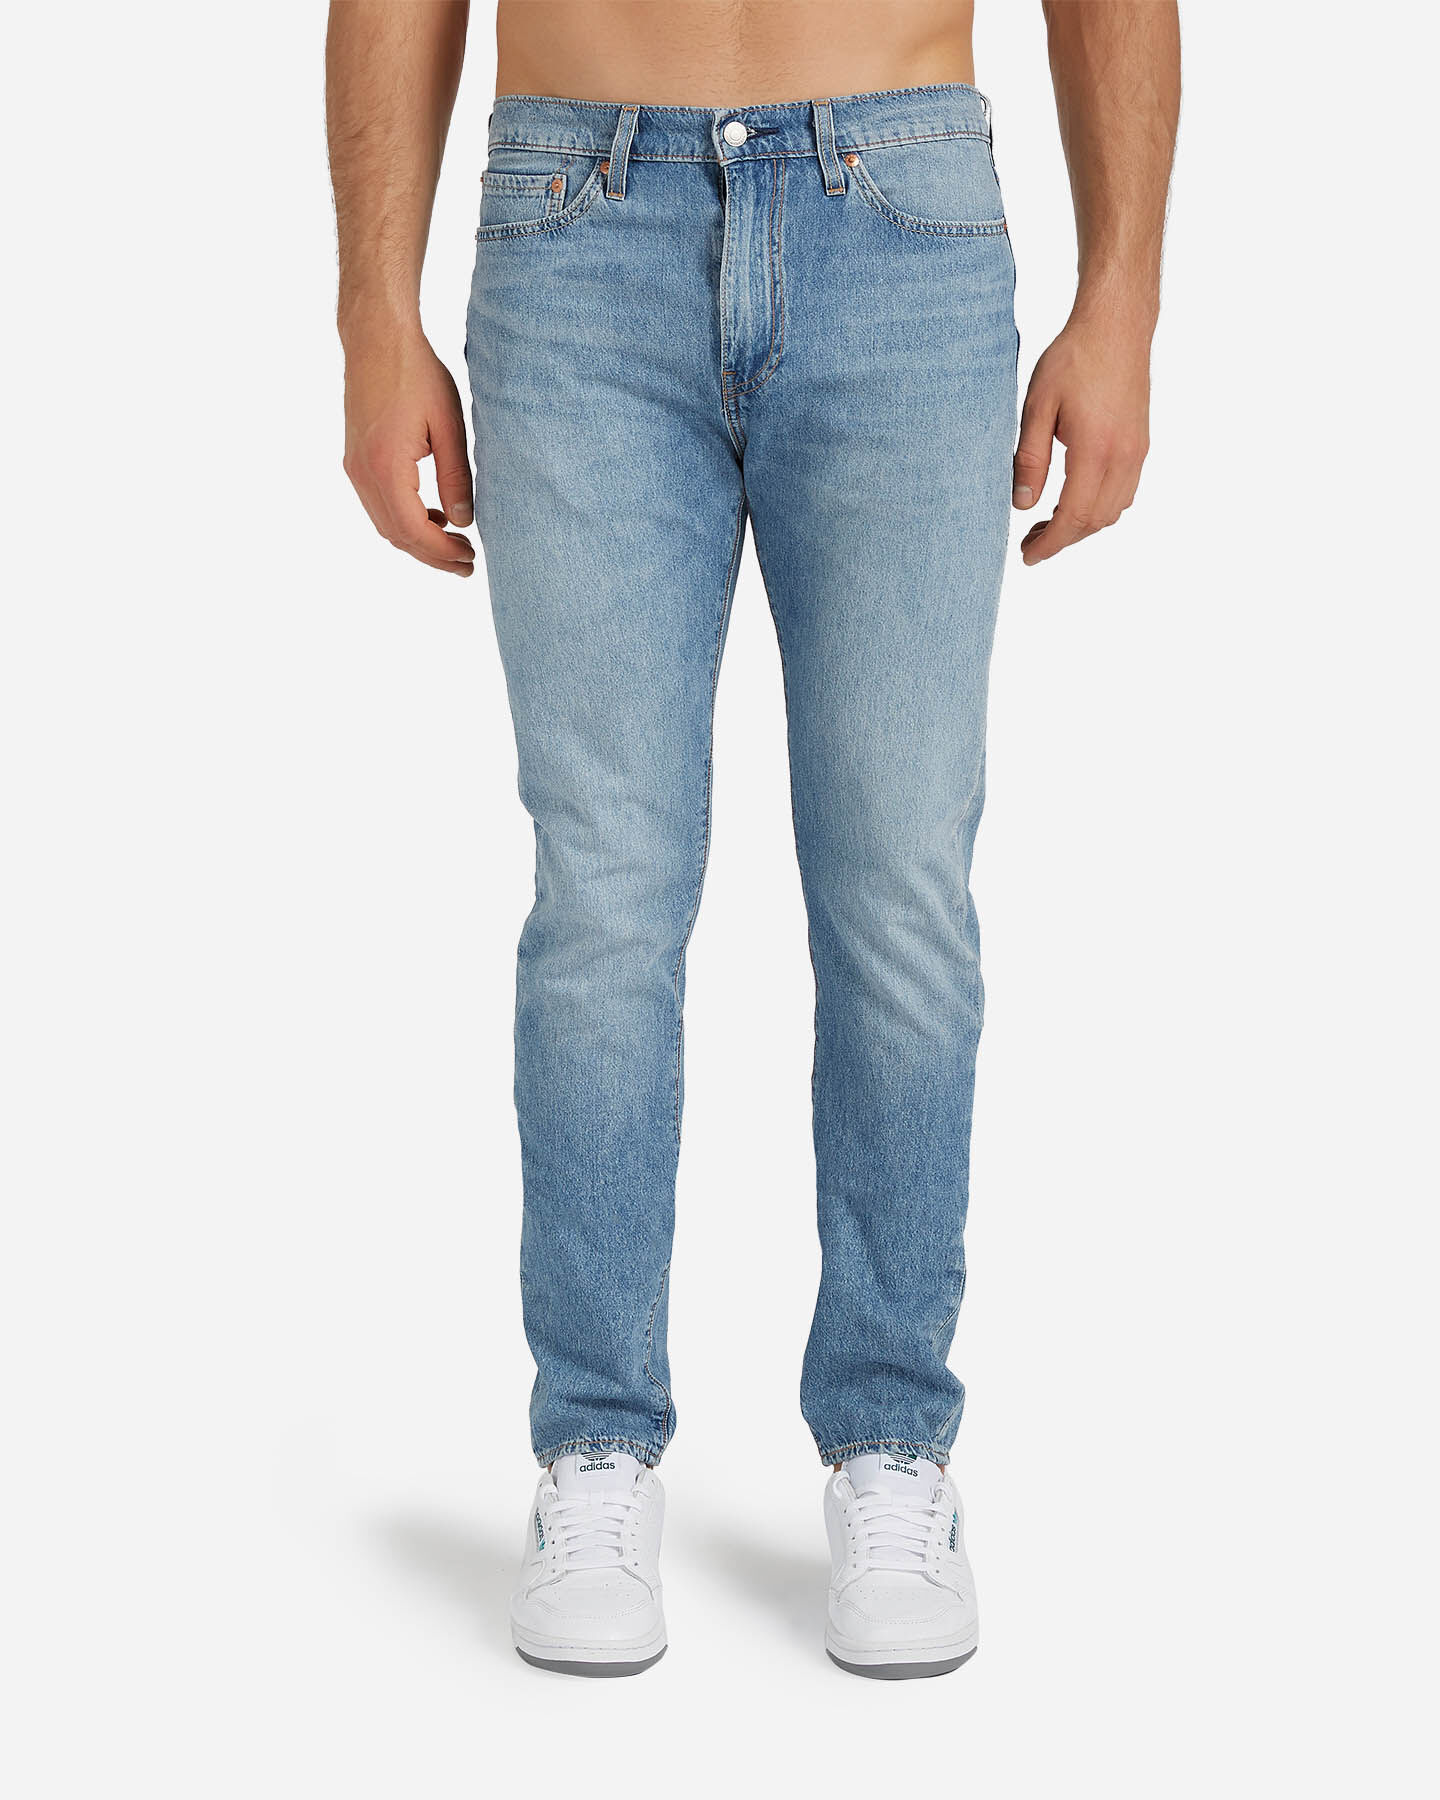 Jeans LEVI'S 510 SKINNY M S4076911 scatto 0